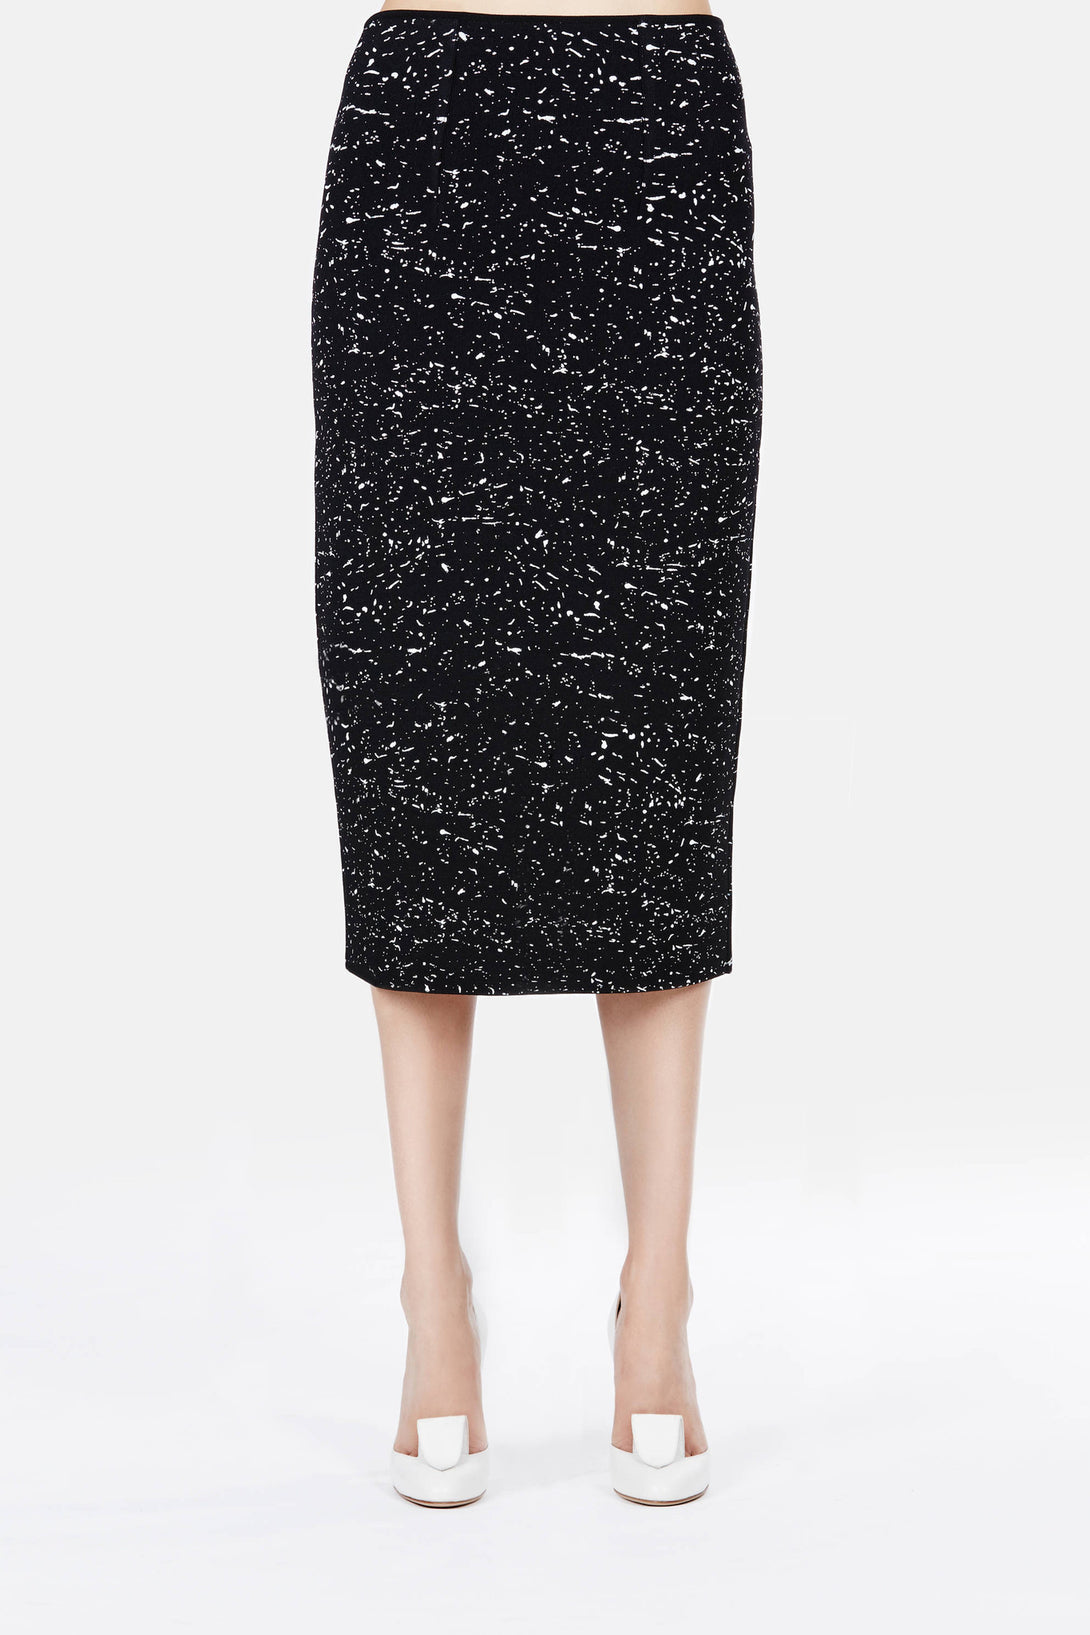 Splatter Print High Waisted Knit Skirt